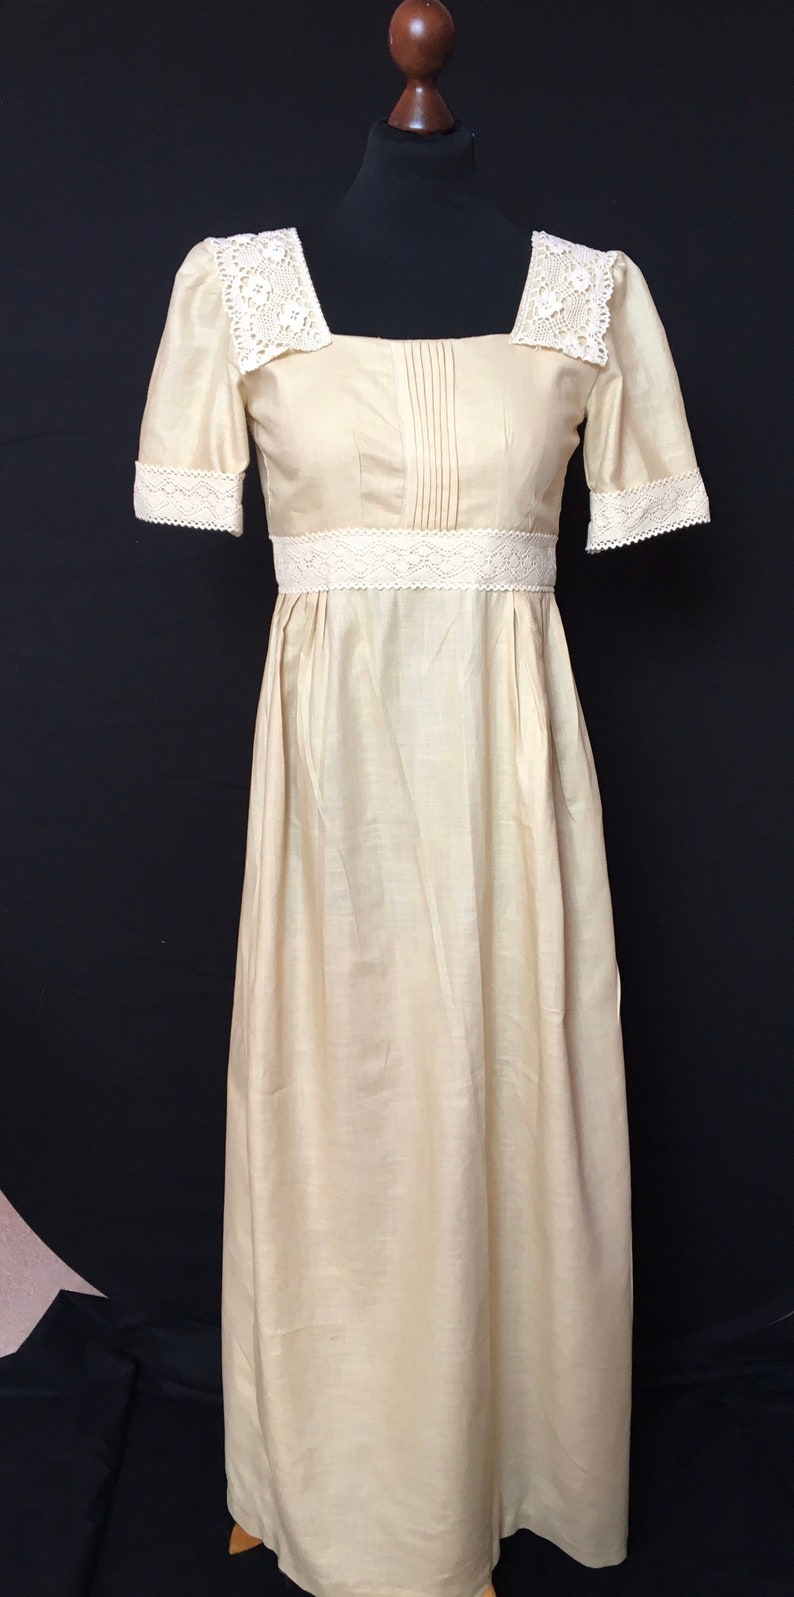 1920s Outfit Ideas: 10 Downton Abbey Inspired Costumes Edwardian dressSuffragetteDownton Abbey dress Victorian dress Steampunk dress $165.00 AT vintagedancer.com